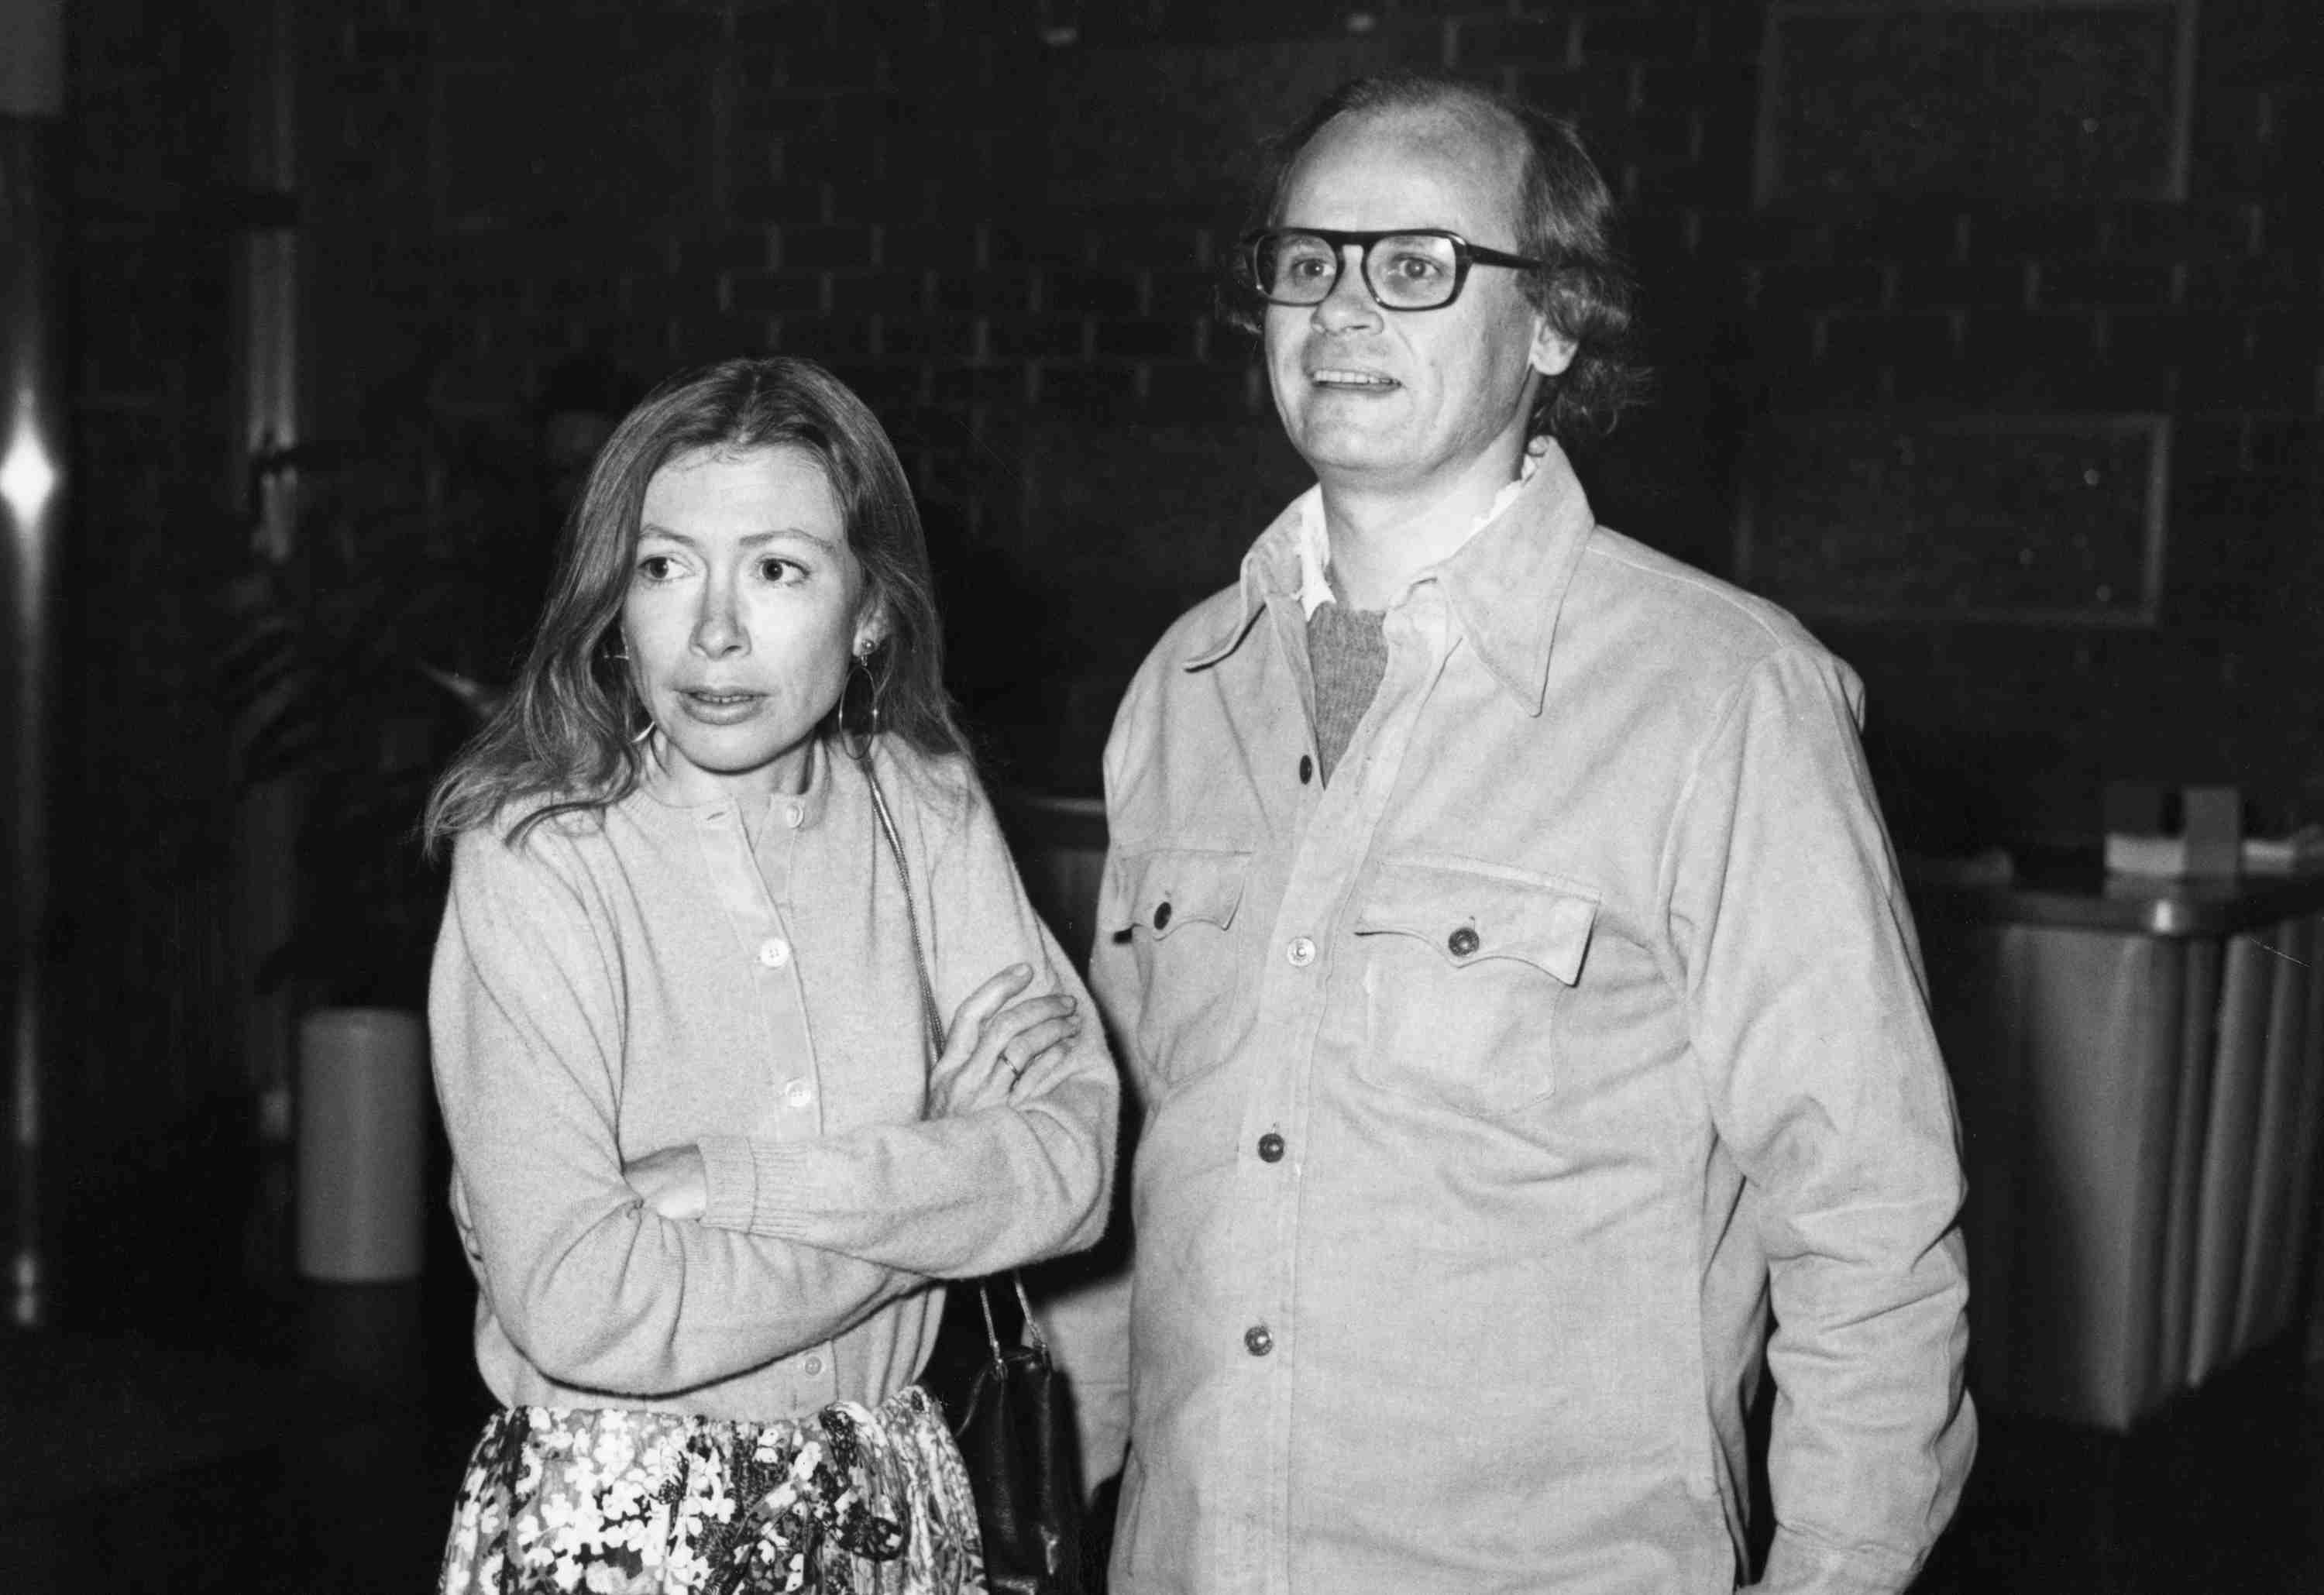 photograph of Joan Didion and John Gregory Dunne